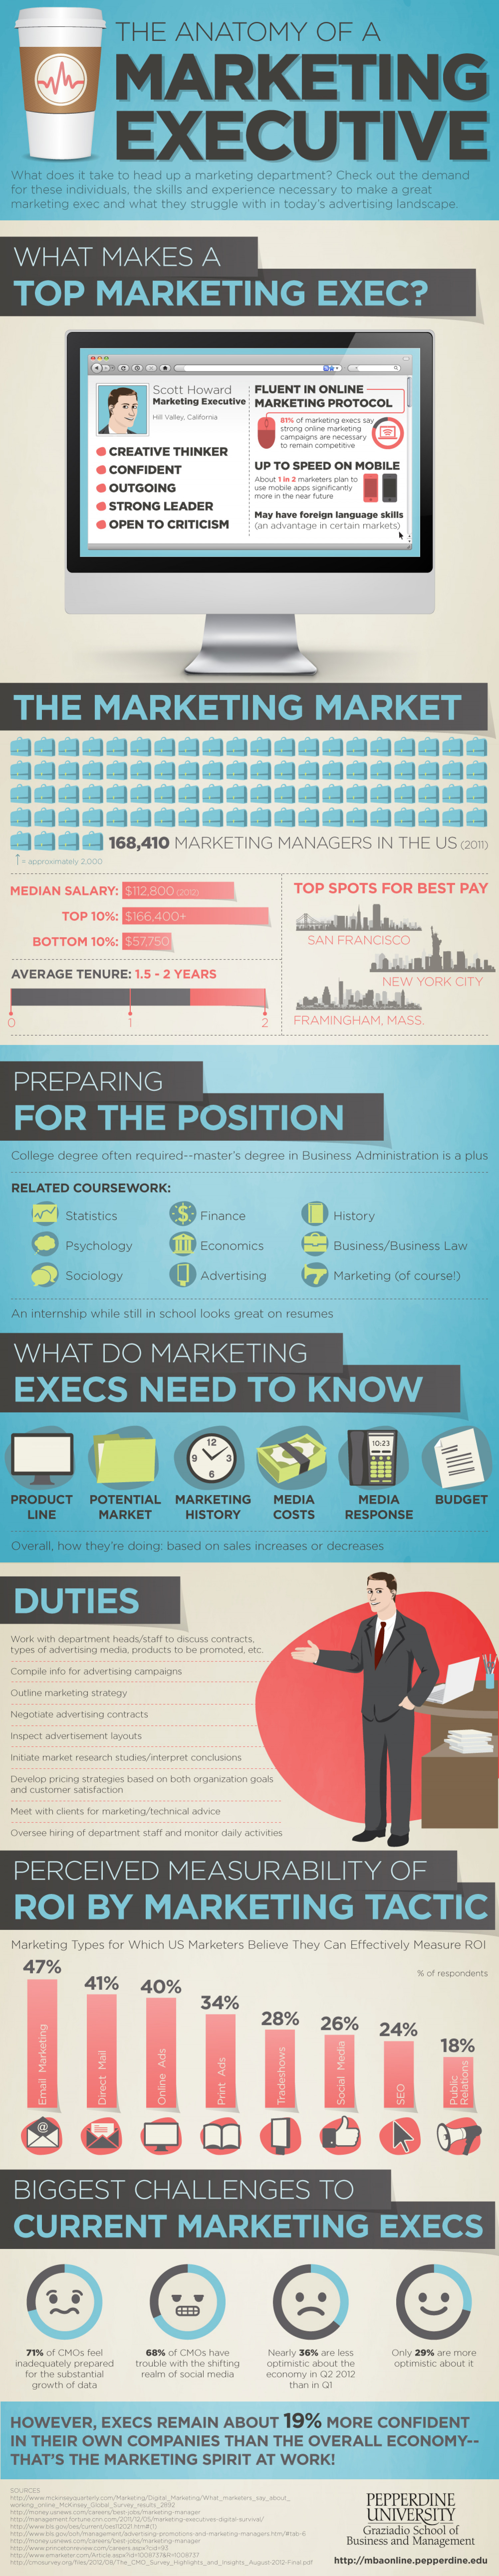 Anatomy of a Marketing Executive Infographic